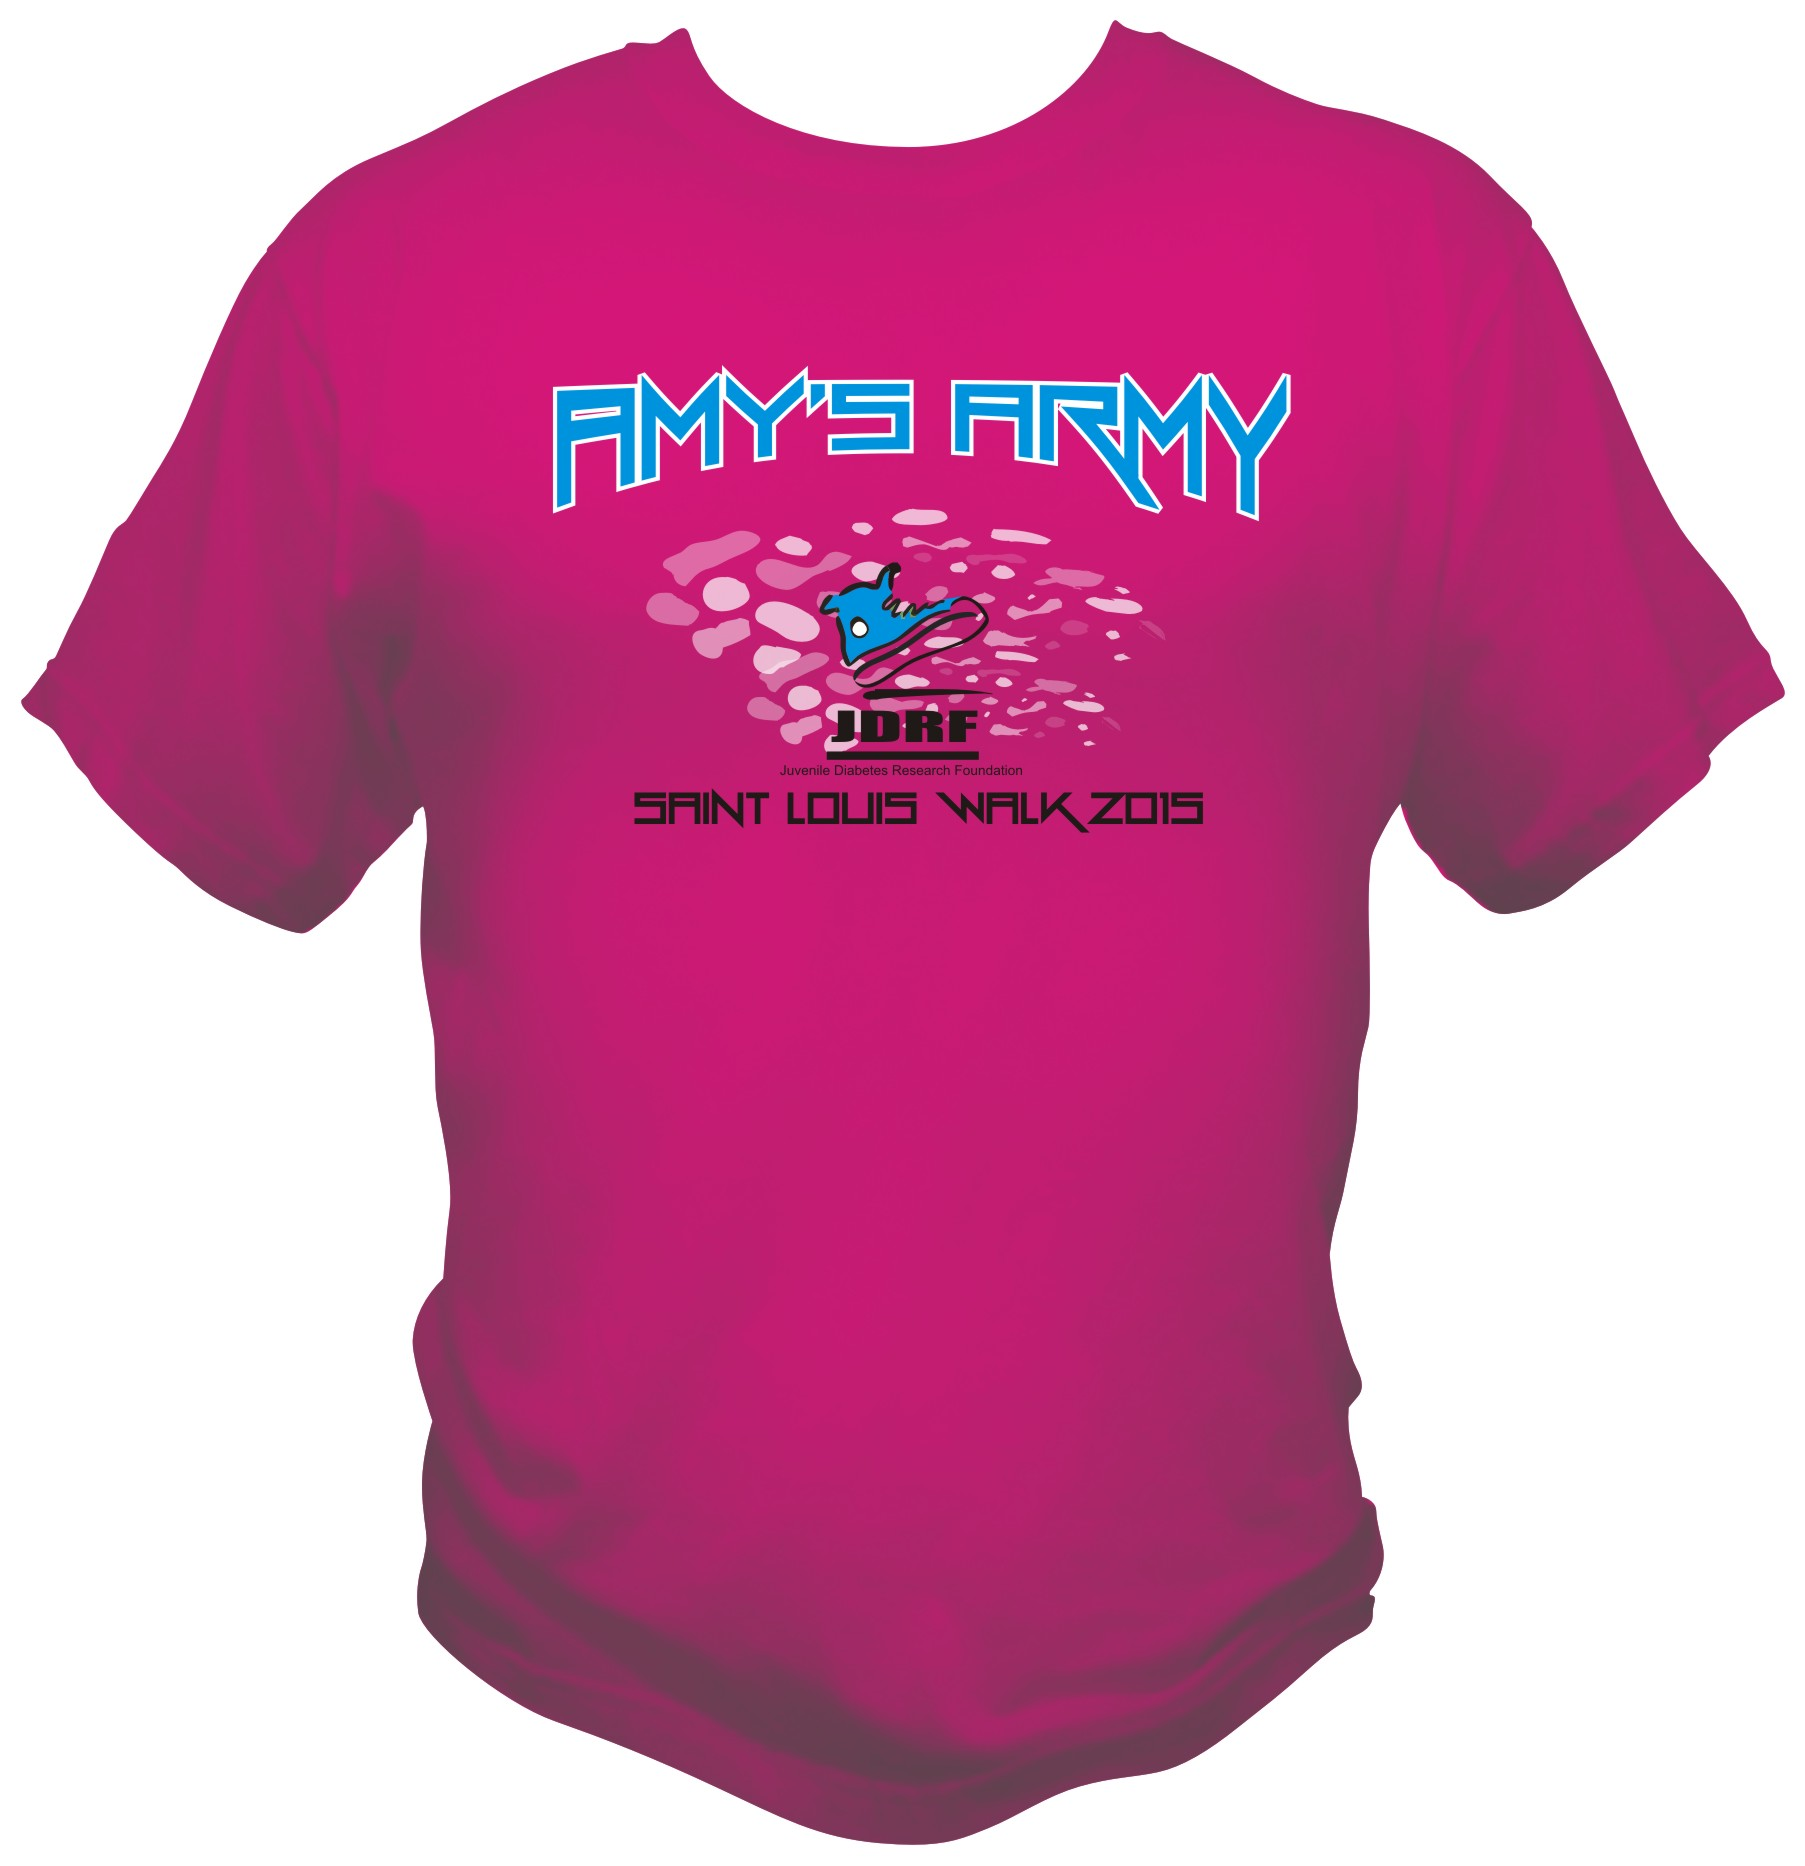 Custom jdrf team t shirts kirkwood trading company for Printed custom t shirts